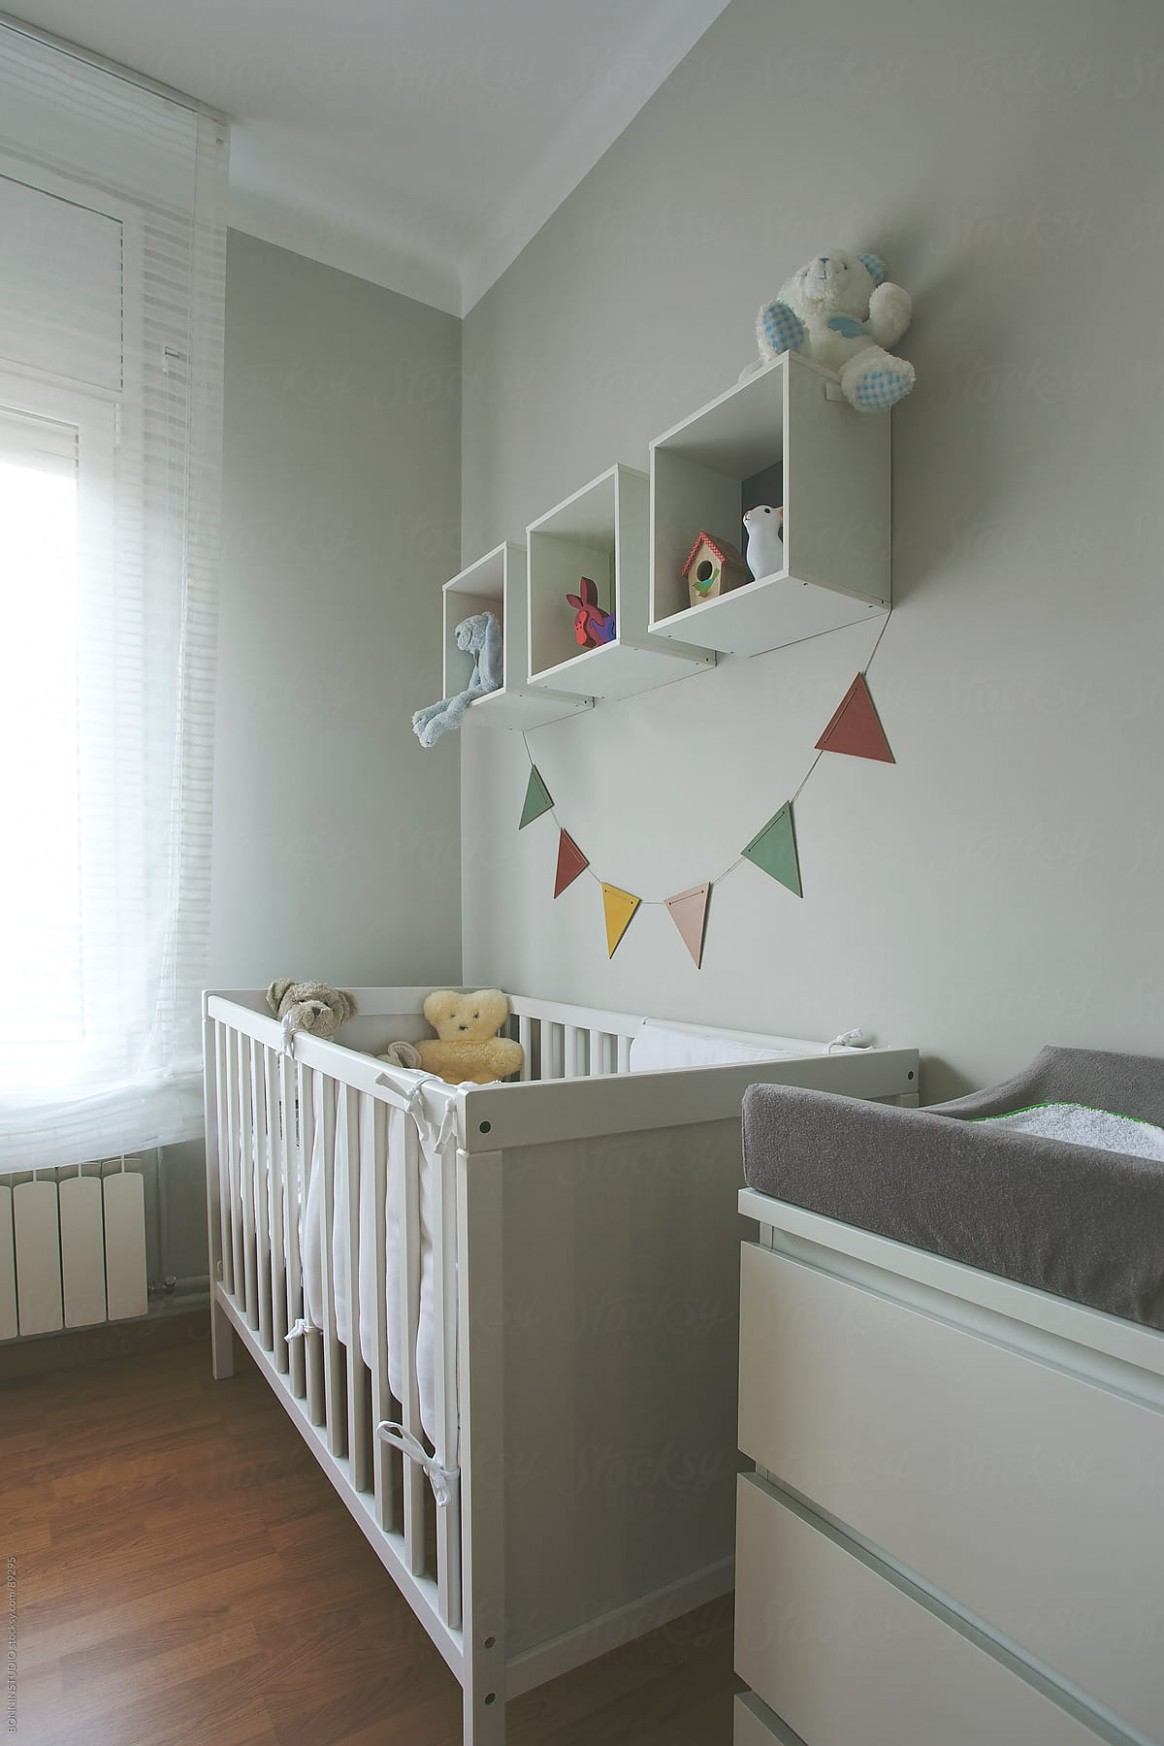 A cute baby room with colorful garland. Pastel tones